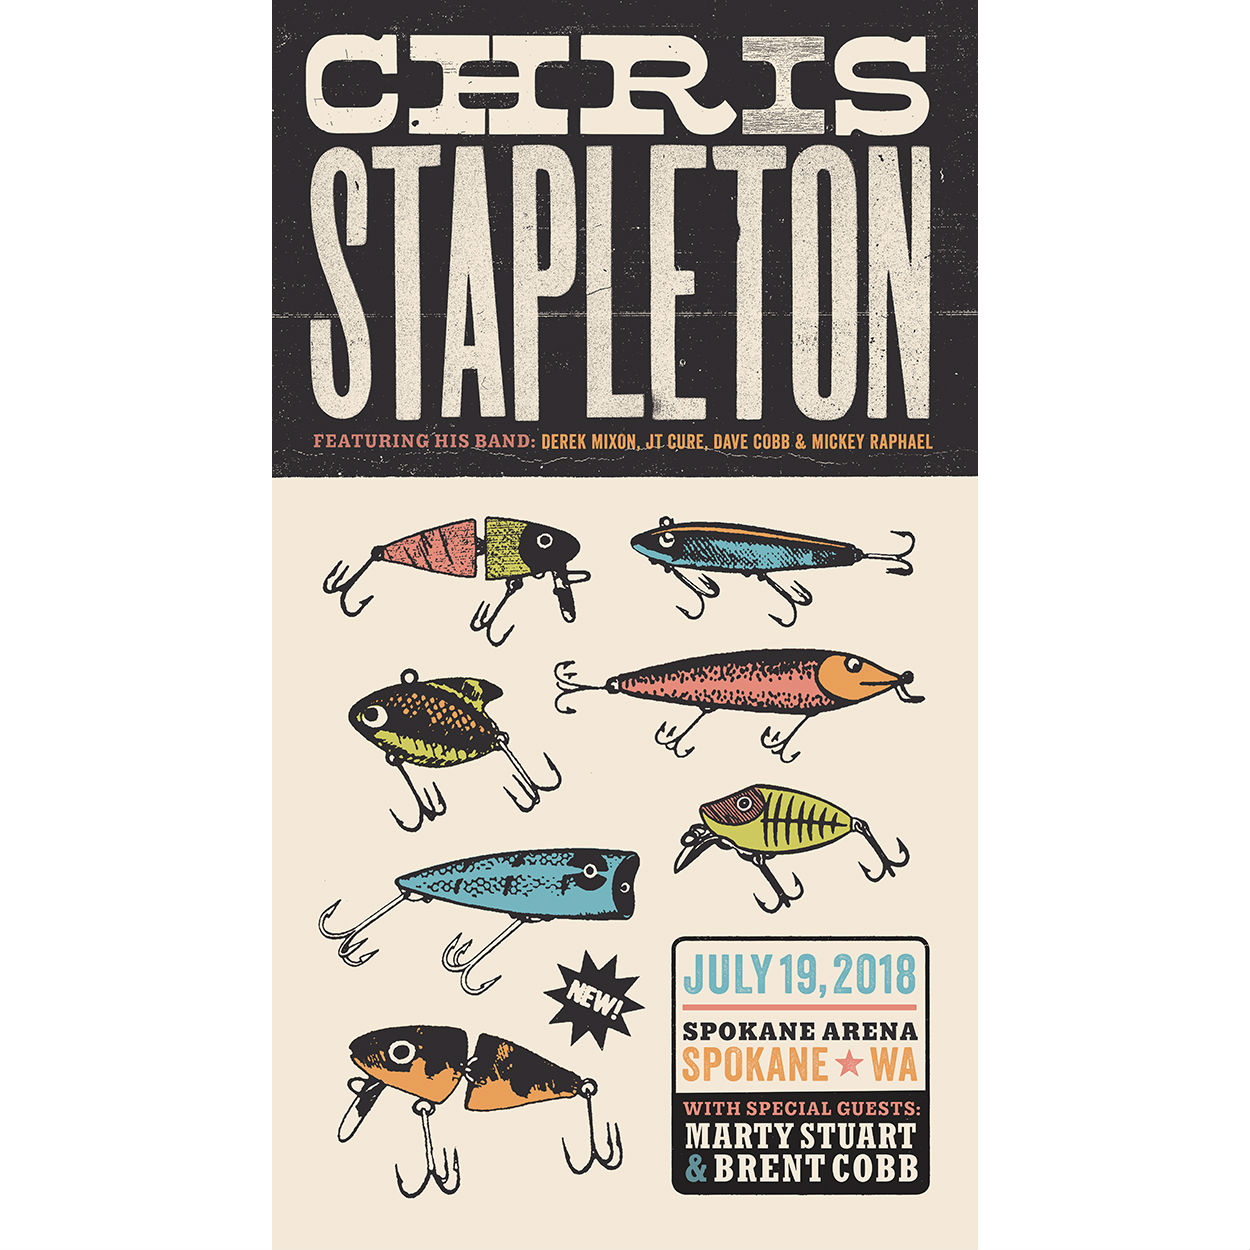 Chris Stapleton Show Poster – Spokane, WA 07/19/18